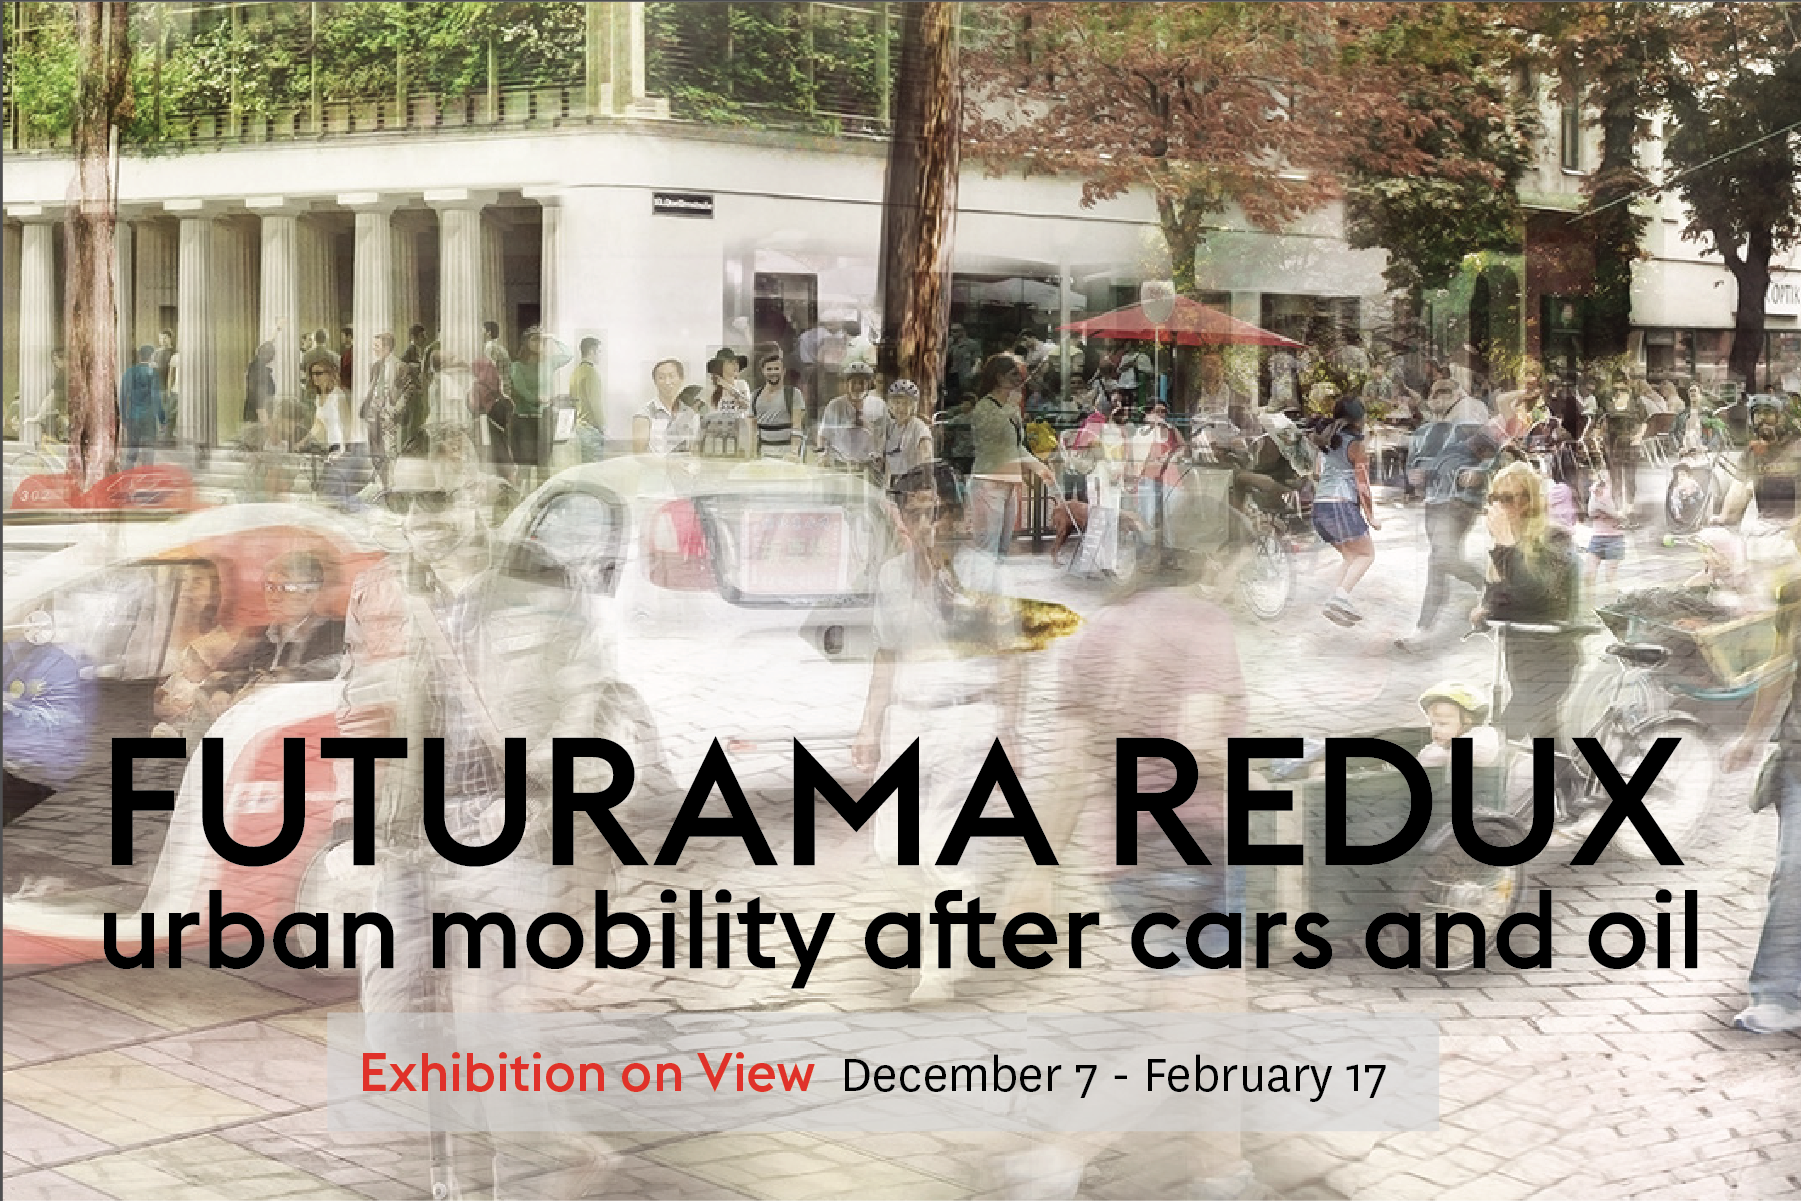 Futurama Redux: Urban Mobility After Cars And Oil considers how a transition to postcarbon urban mobility might foster sustainability, resilience, and security while improving quality of life.